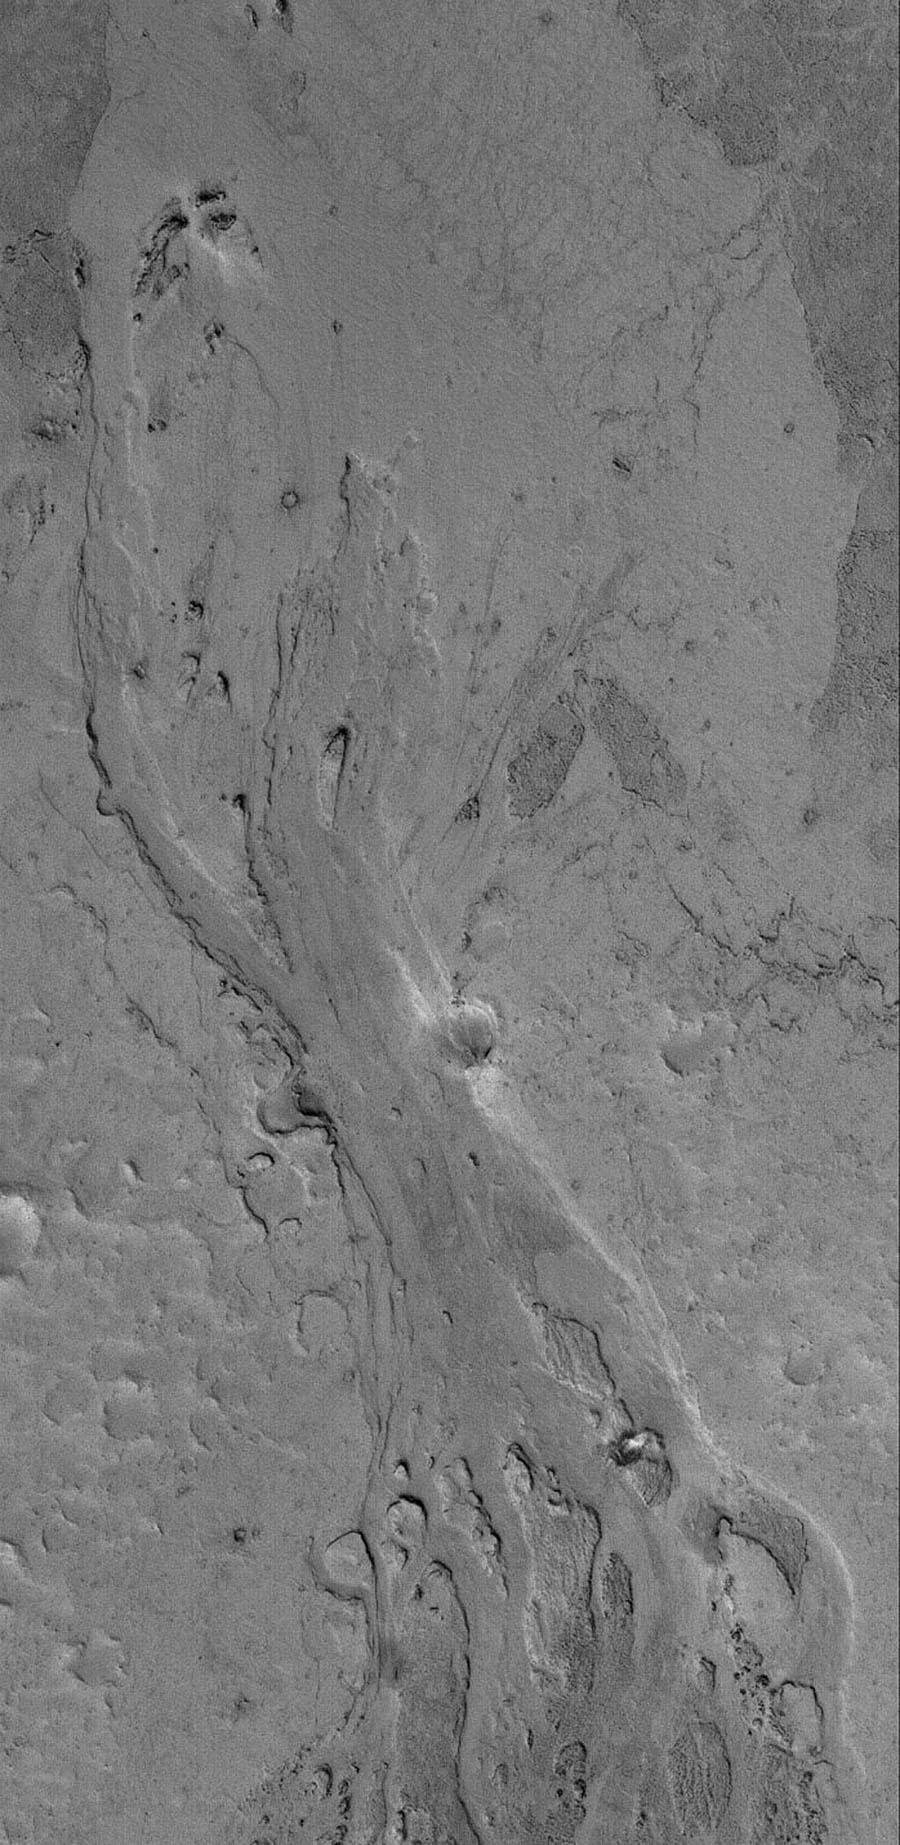 NASA's Mars Global Surveyor shows a portion of a shallow channel carved in the plains of the Zephyria region of Mars. This feature might be the result of the passing of either extremely fluid lava or, perhaps, mud.